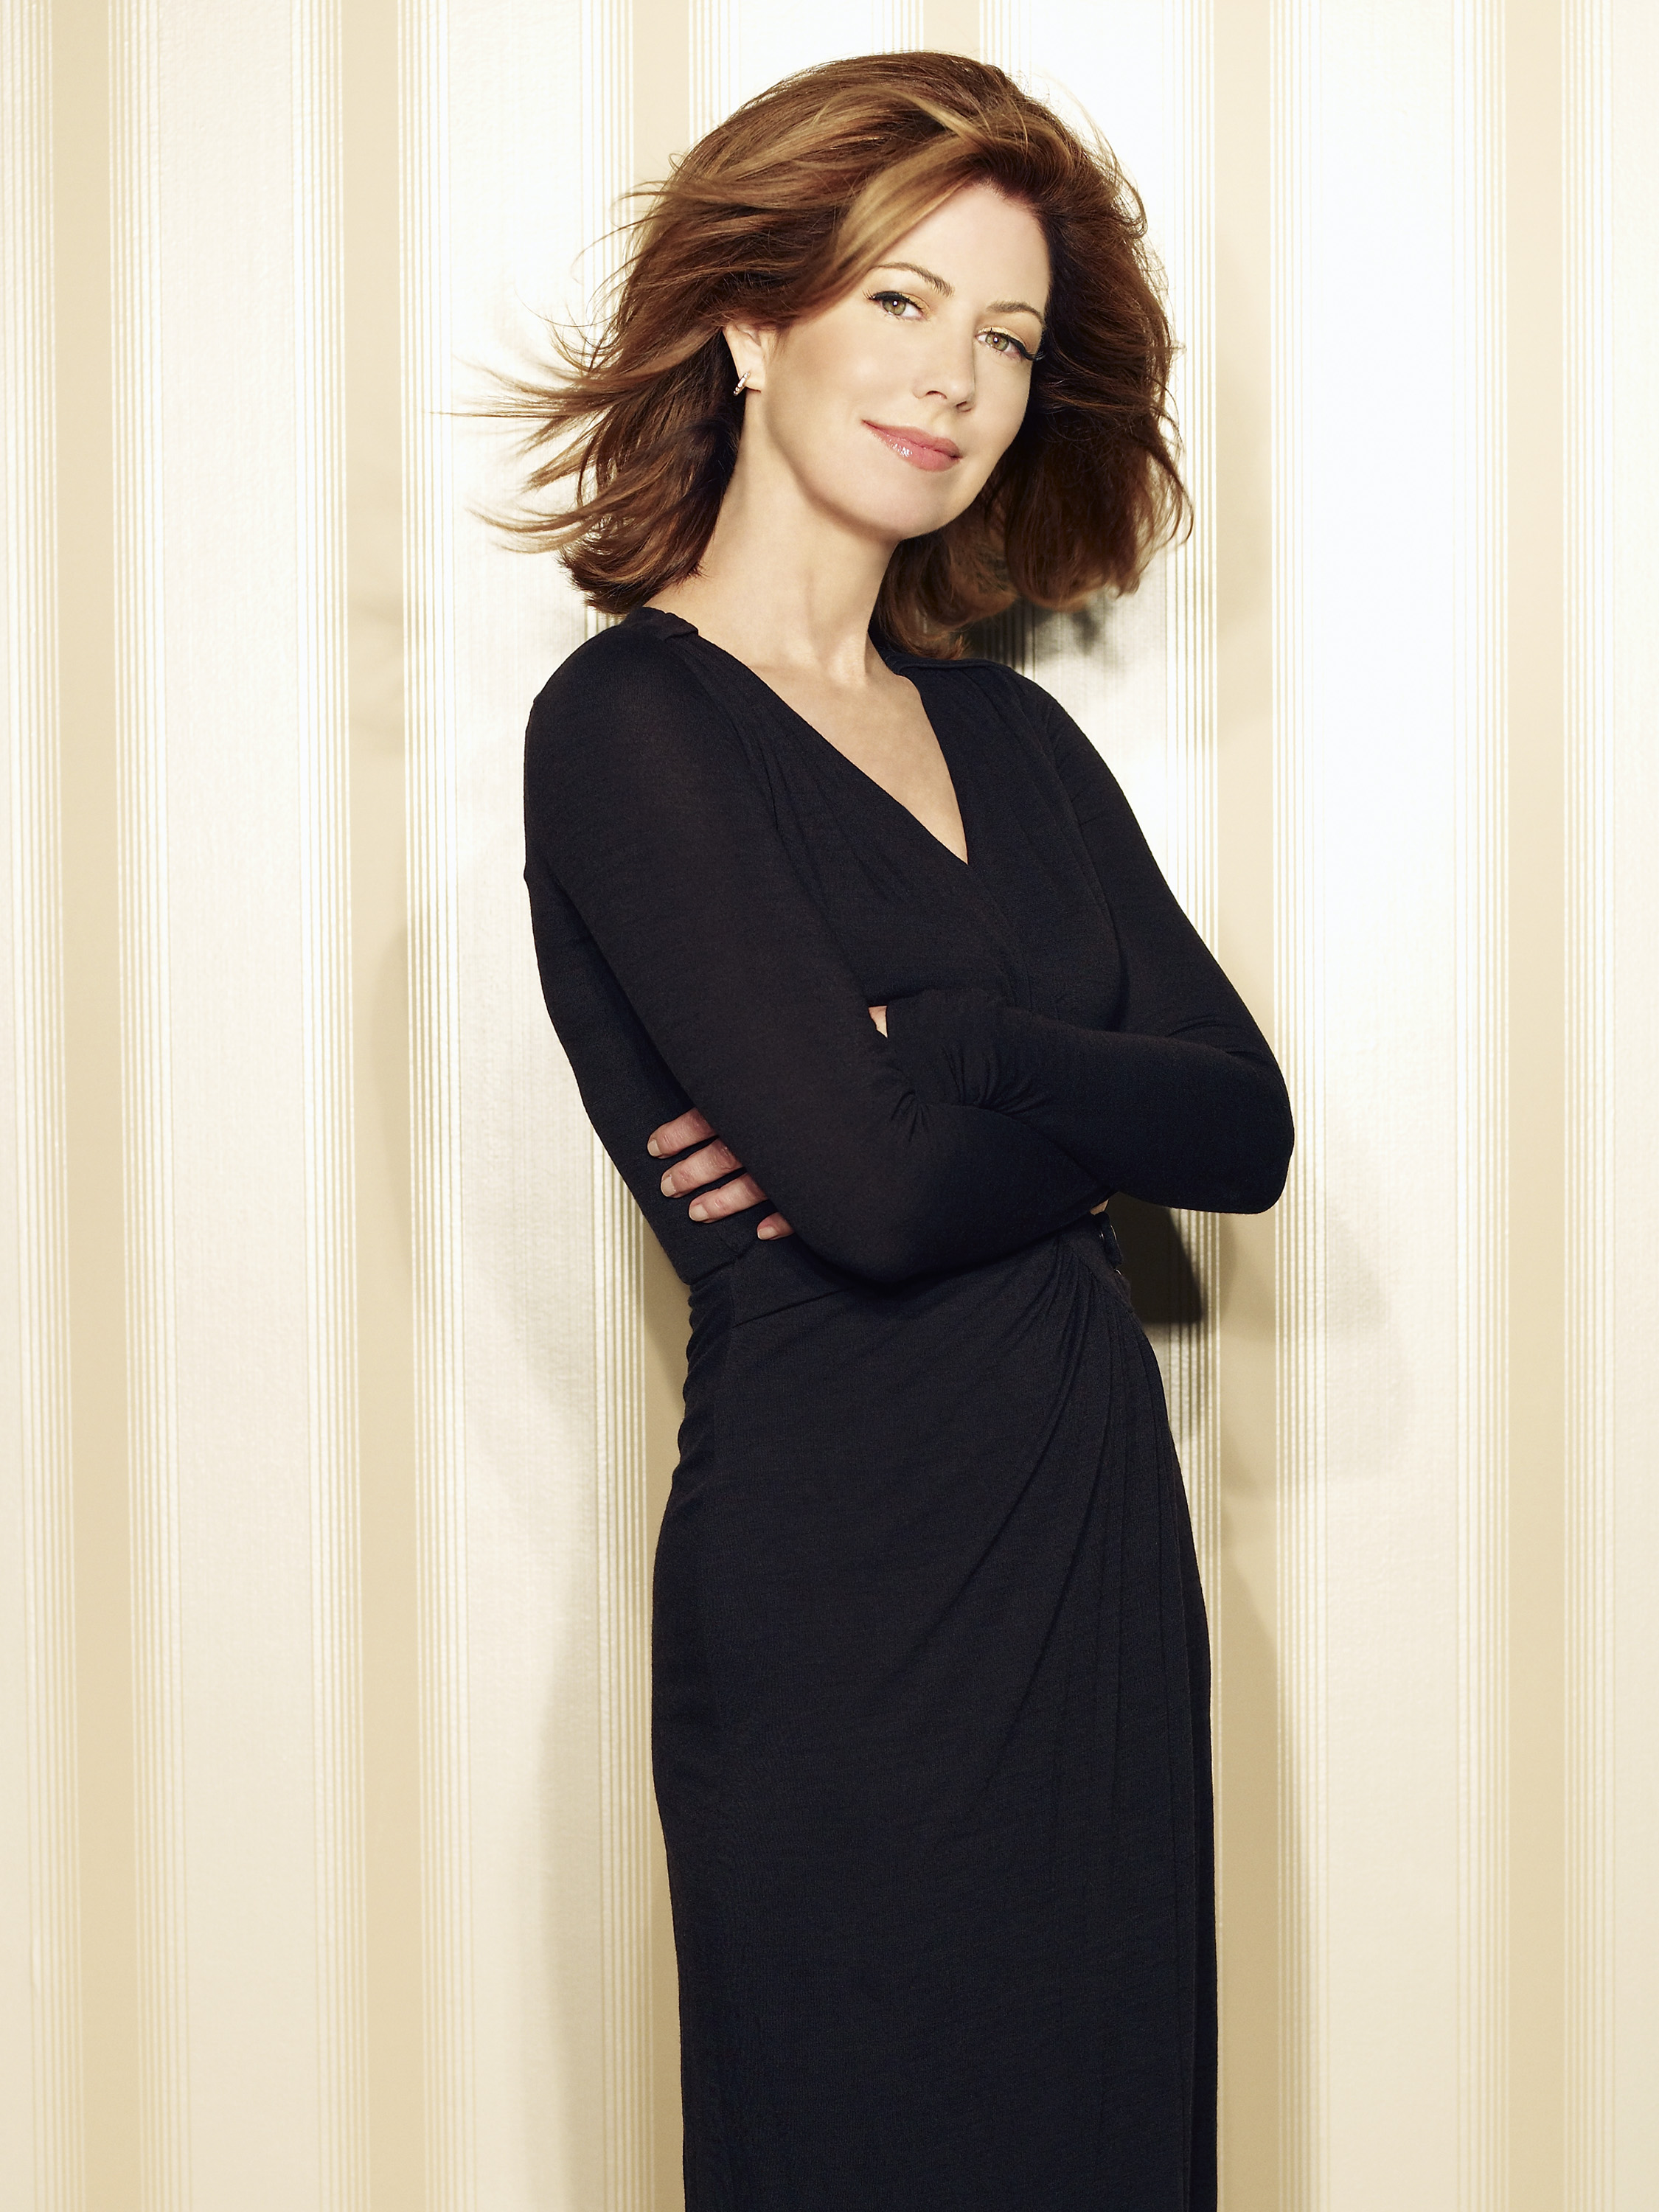 Dana delany desperate housewives remarkable